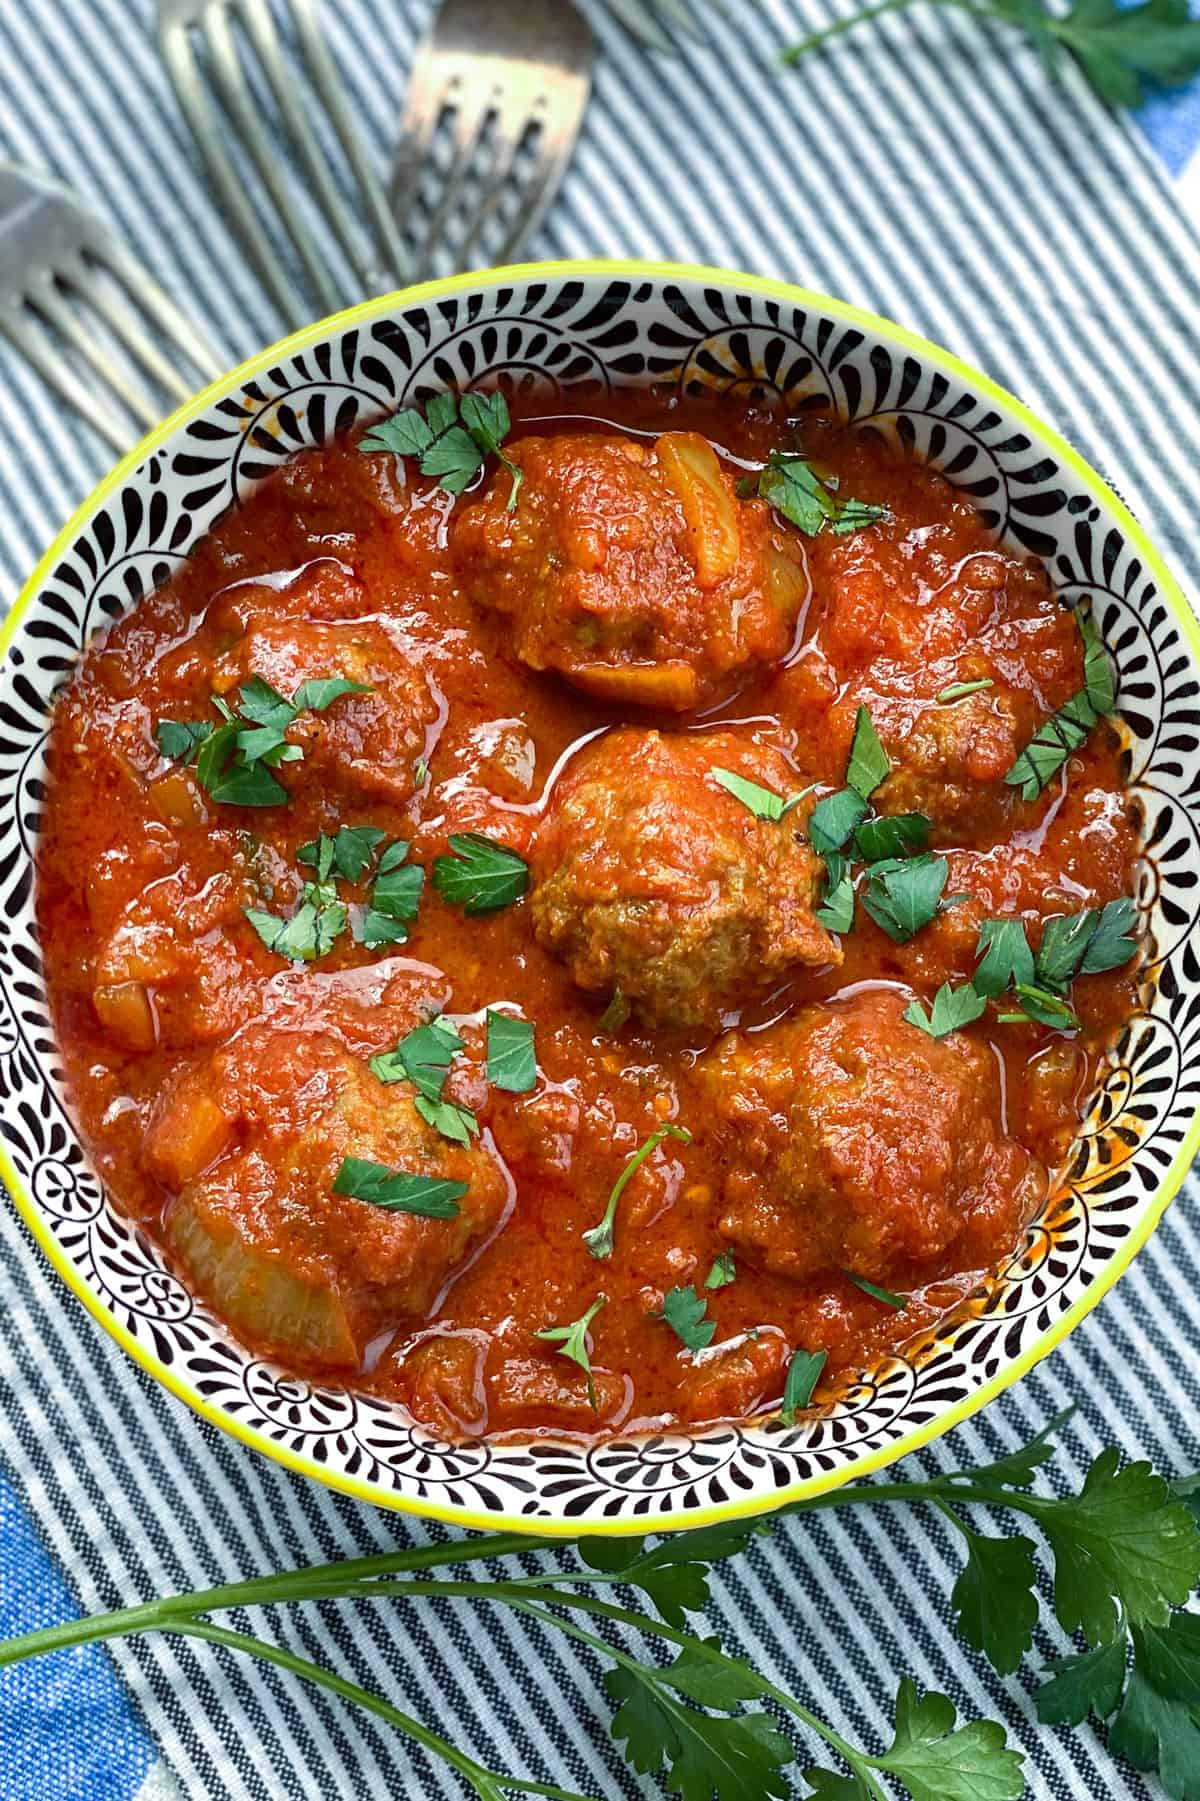 black and white decorative bowl filled with 6 Moroccan meatballs in tomato sauce, with chopped parsley sprinkled on top and a few forks in the background